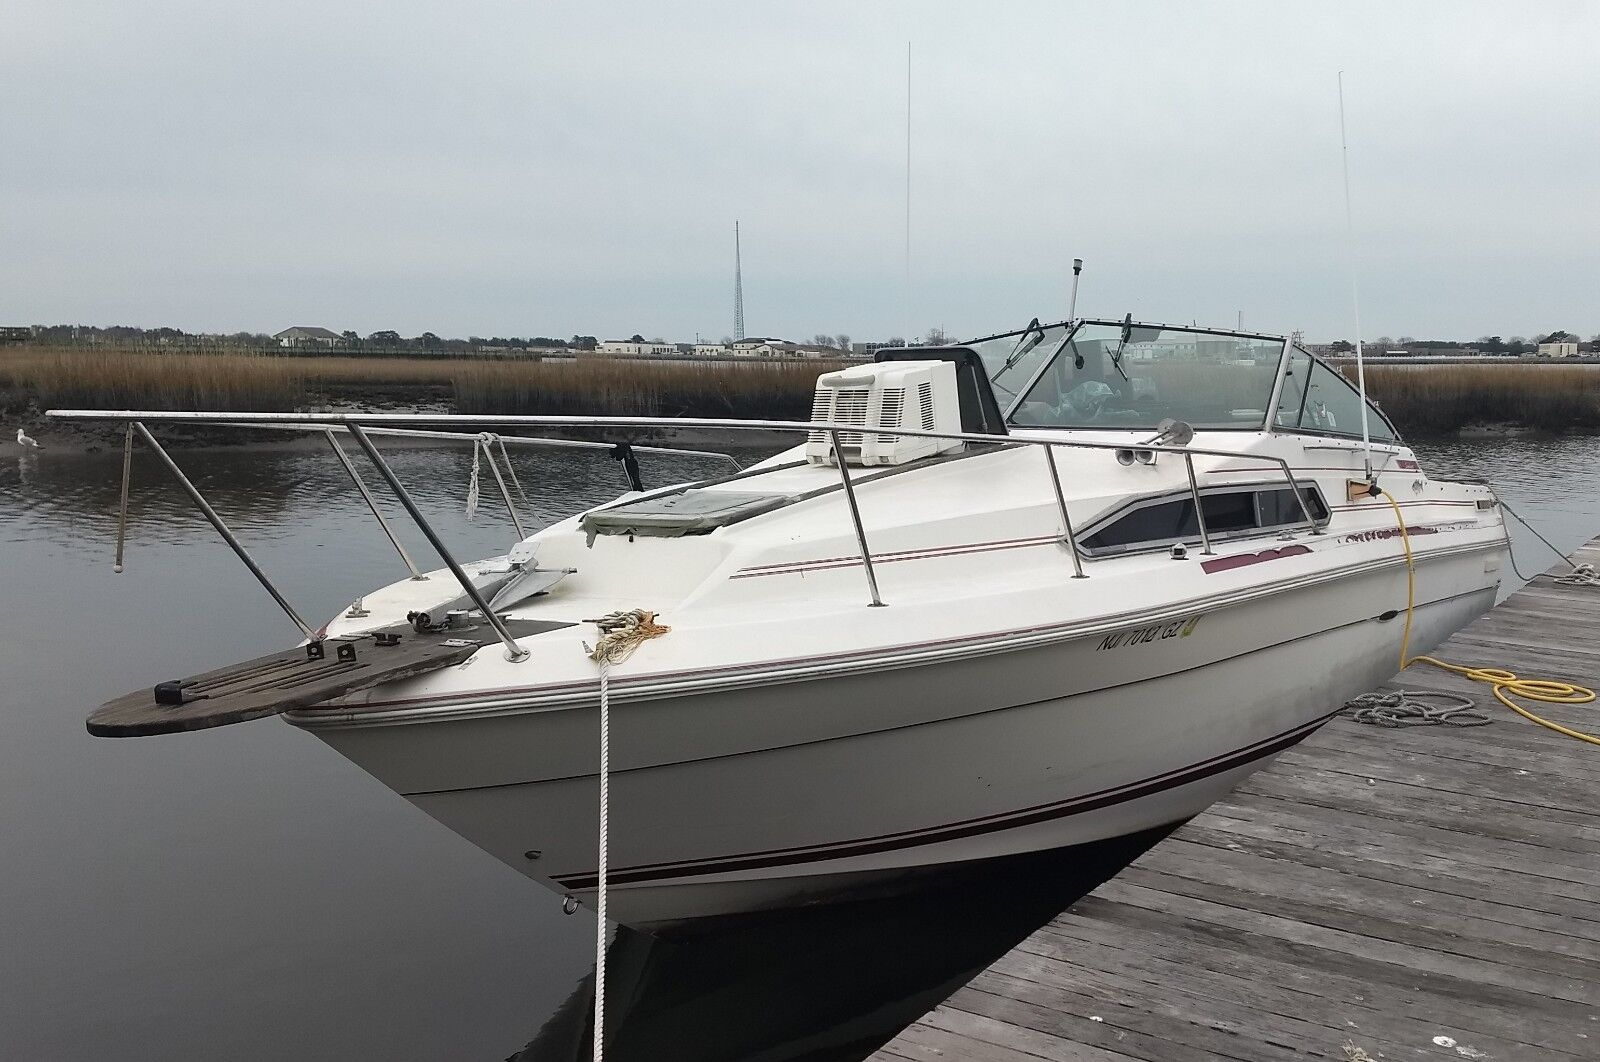 1985 Sea Ray Sundancer 27' Cabin Cruiser - New Jersey